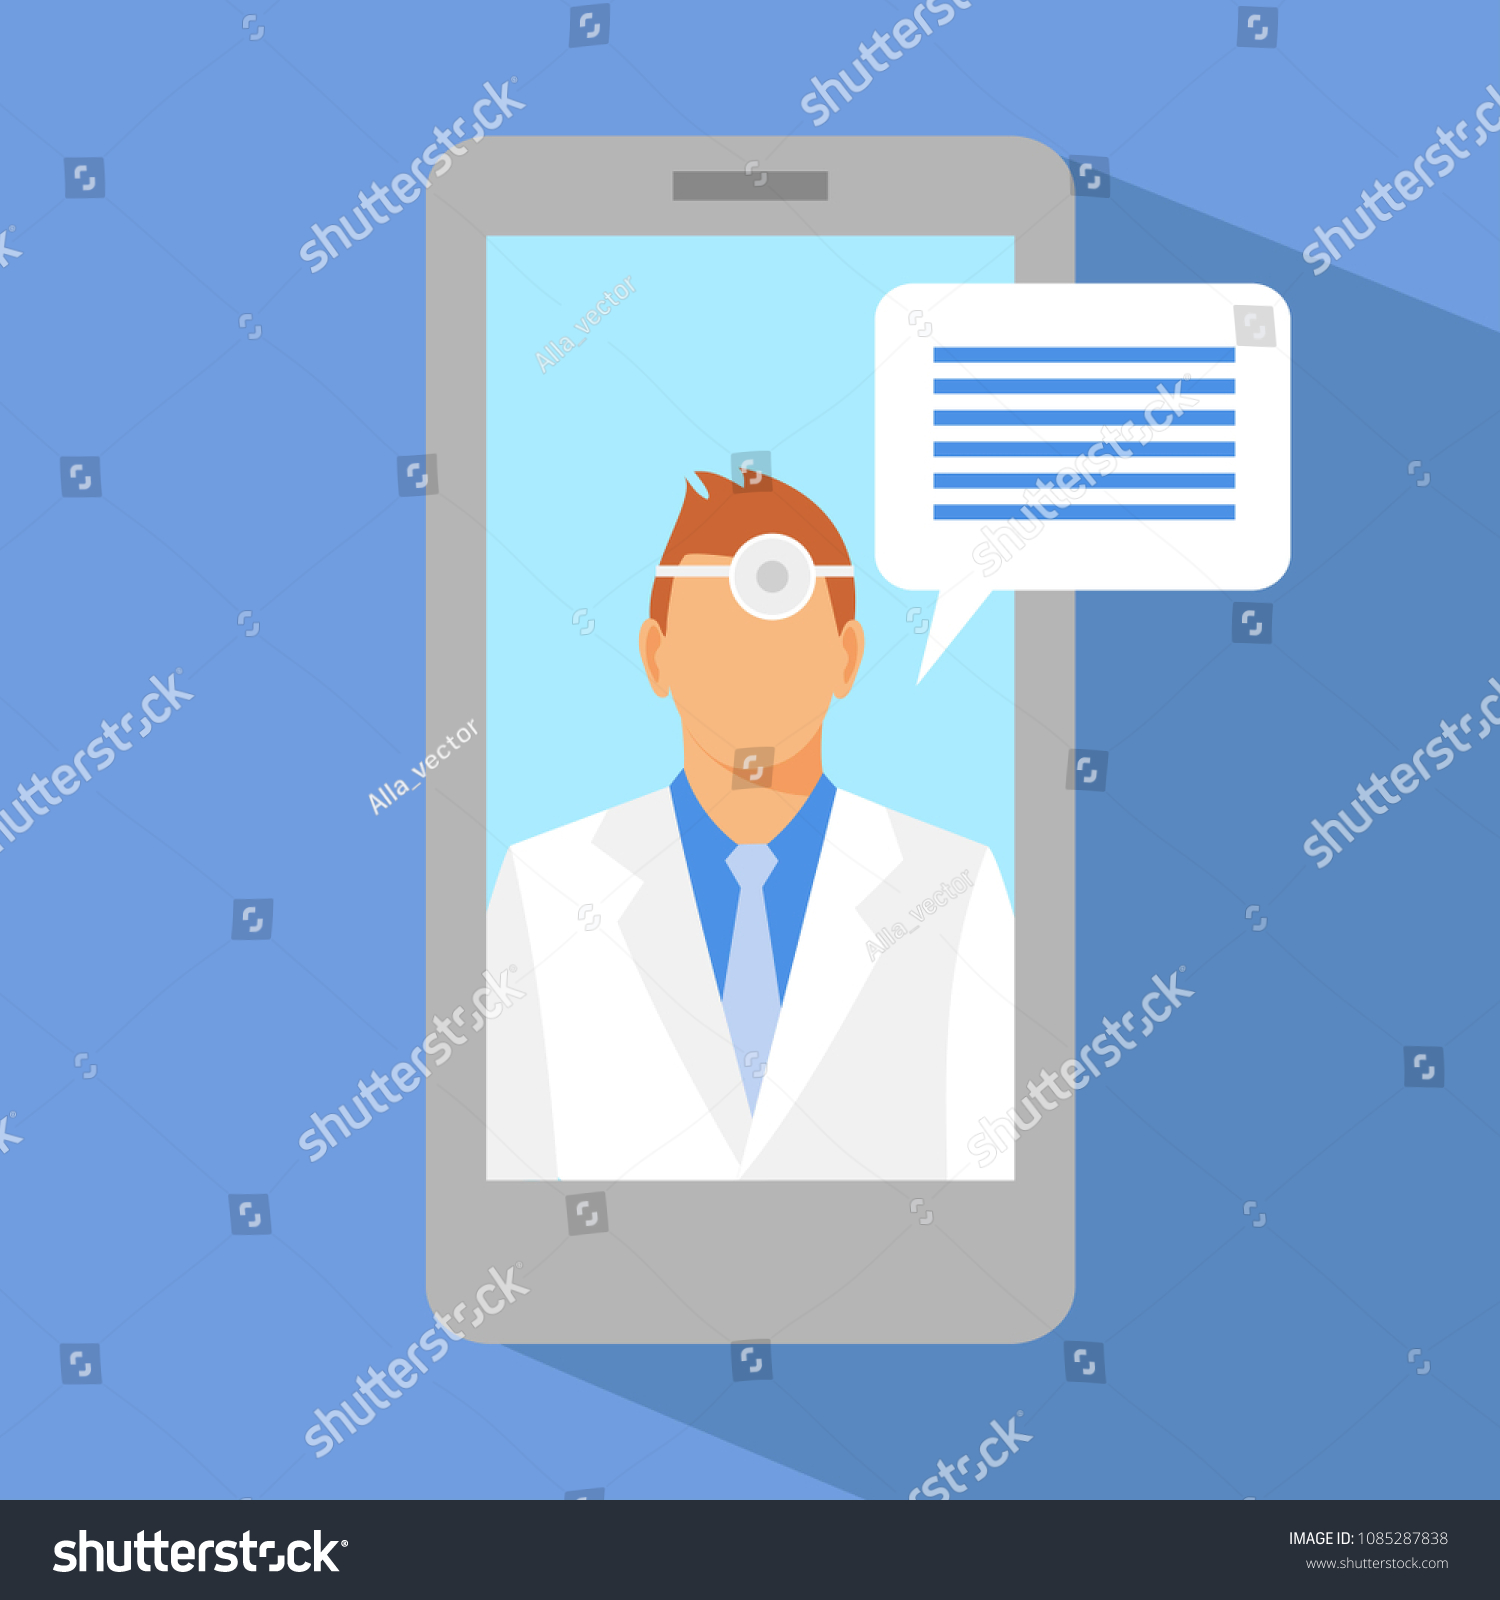 Remote Stethoscope Concept Diagram Wiring Schema Circuit Man Doctor On Screen Stock Vector Royalty Free And World